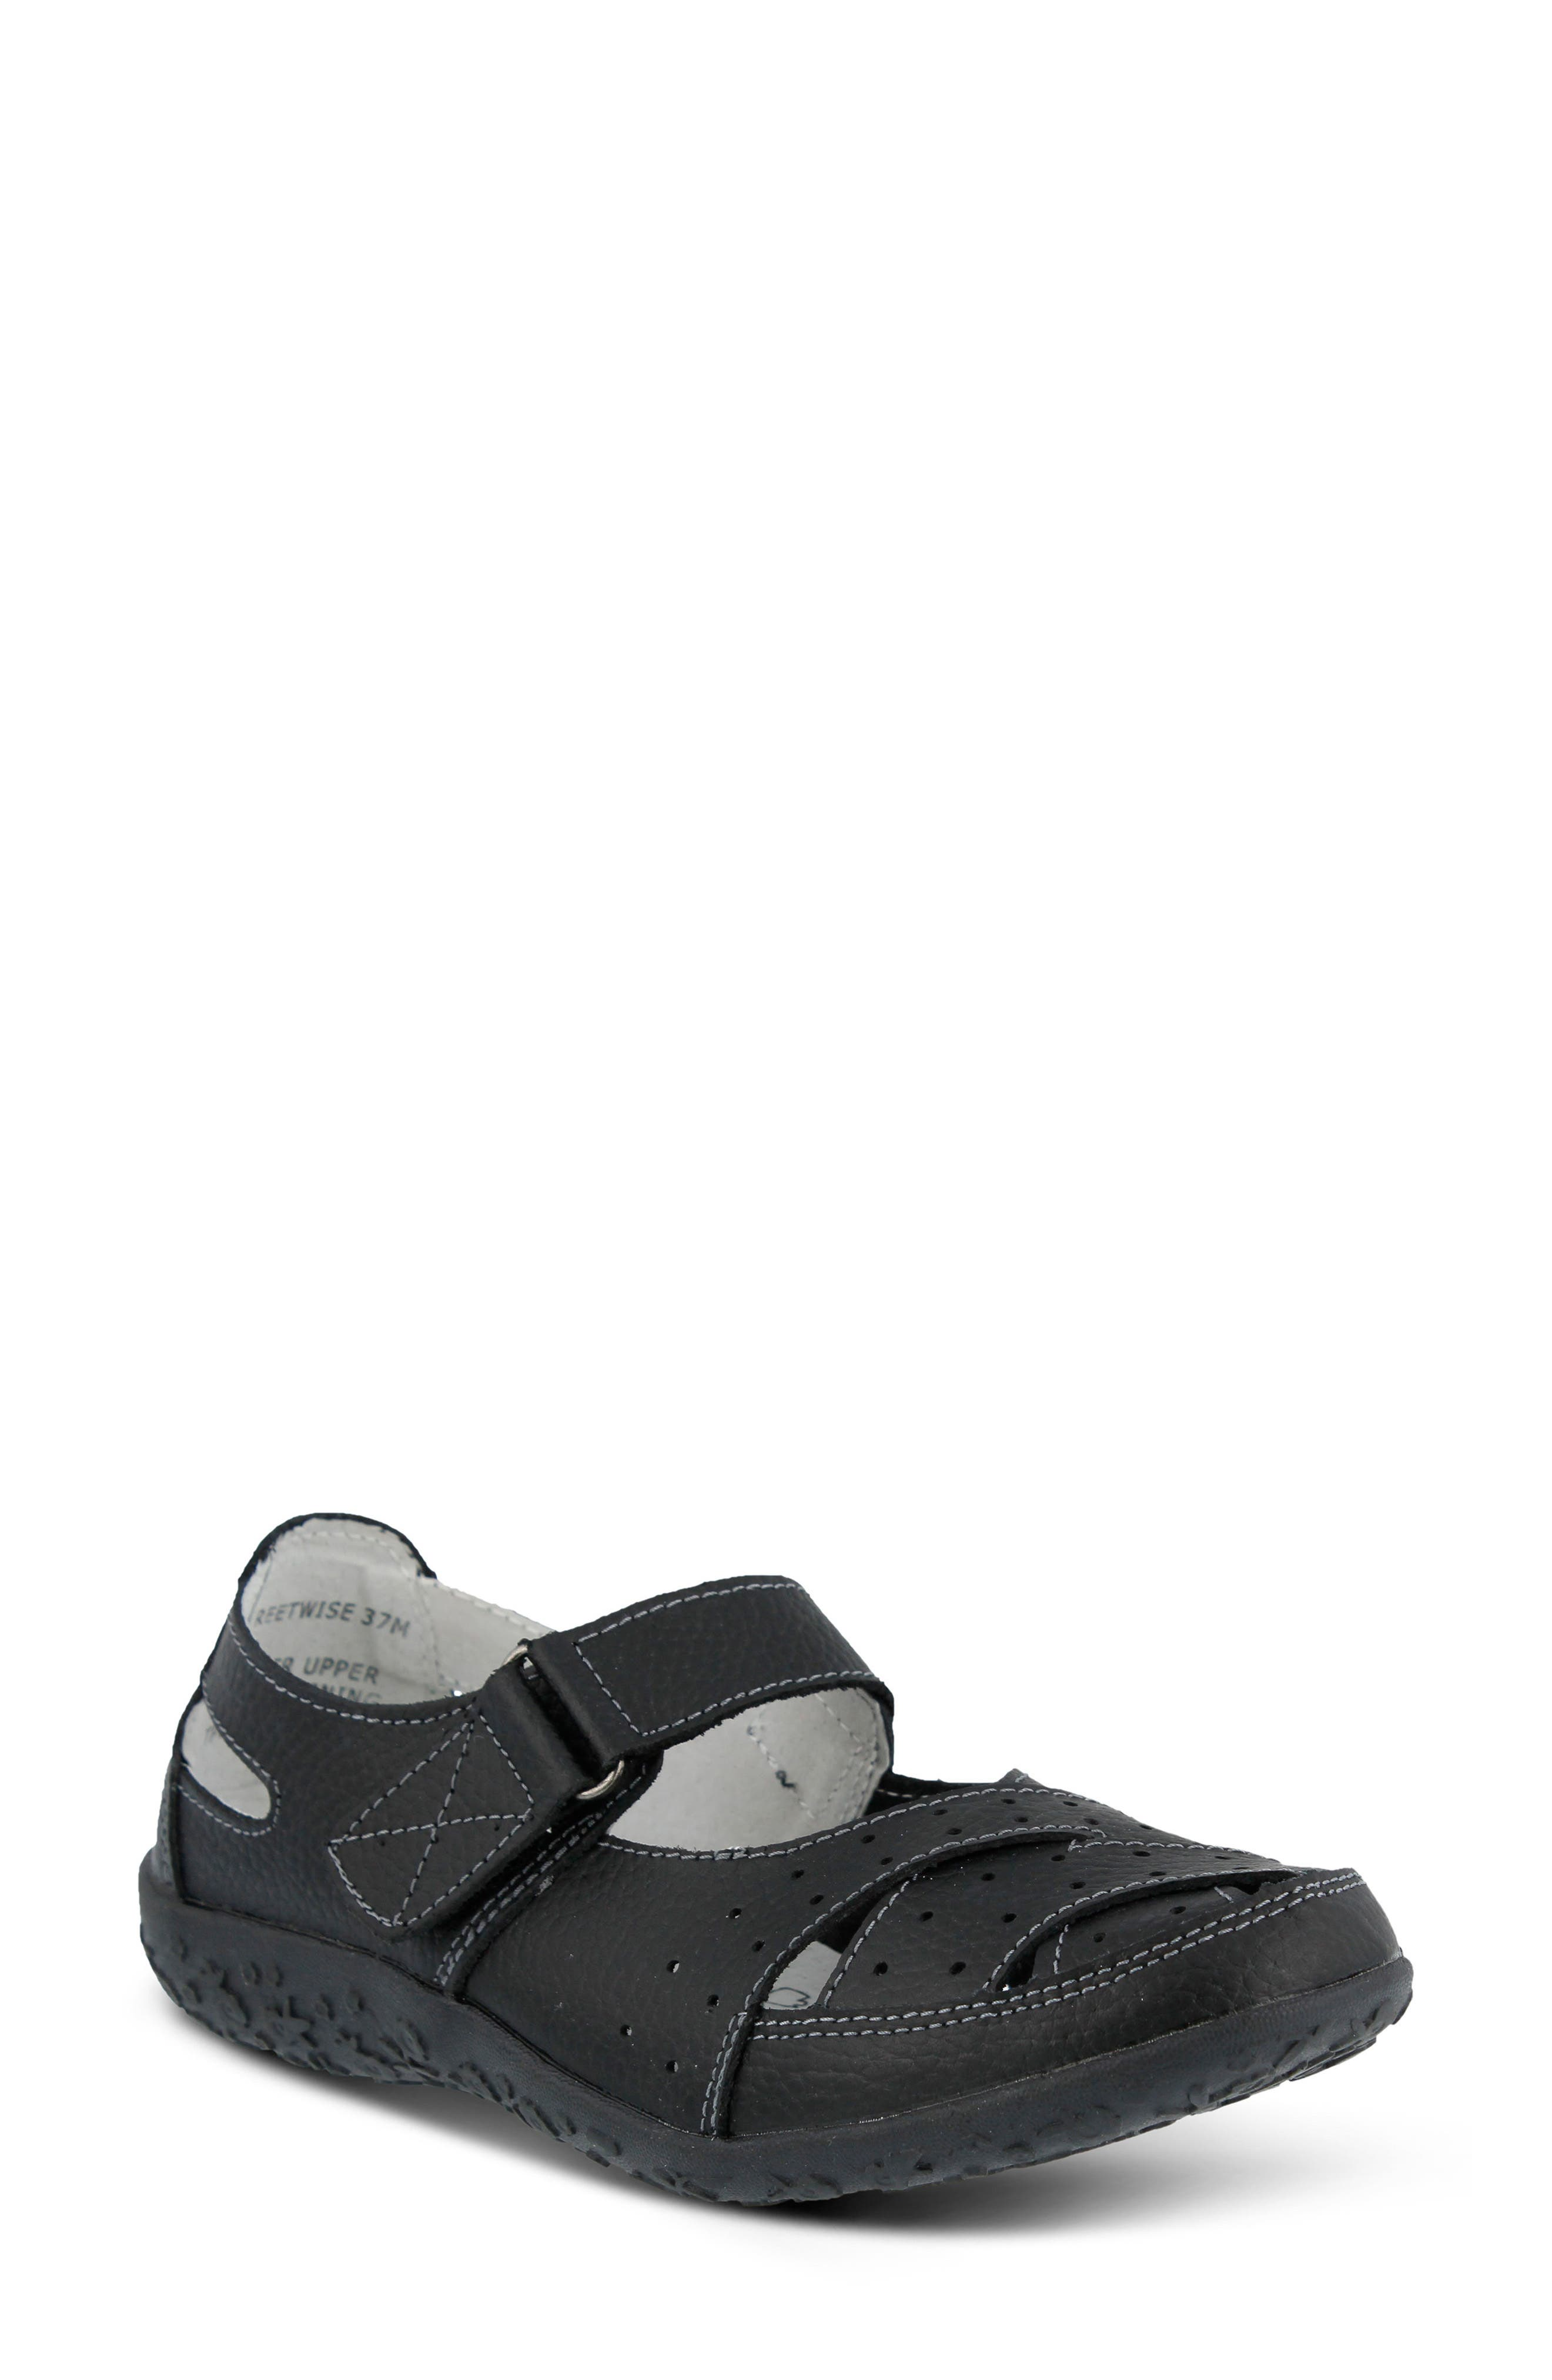 Streetwise Flat,                             Main thumbnail 1, color,                             BLACK LEATHER